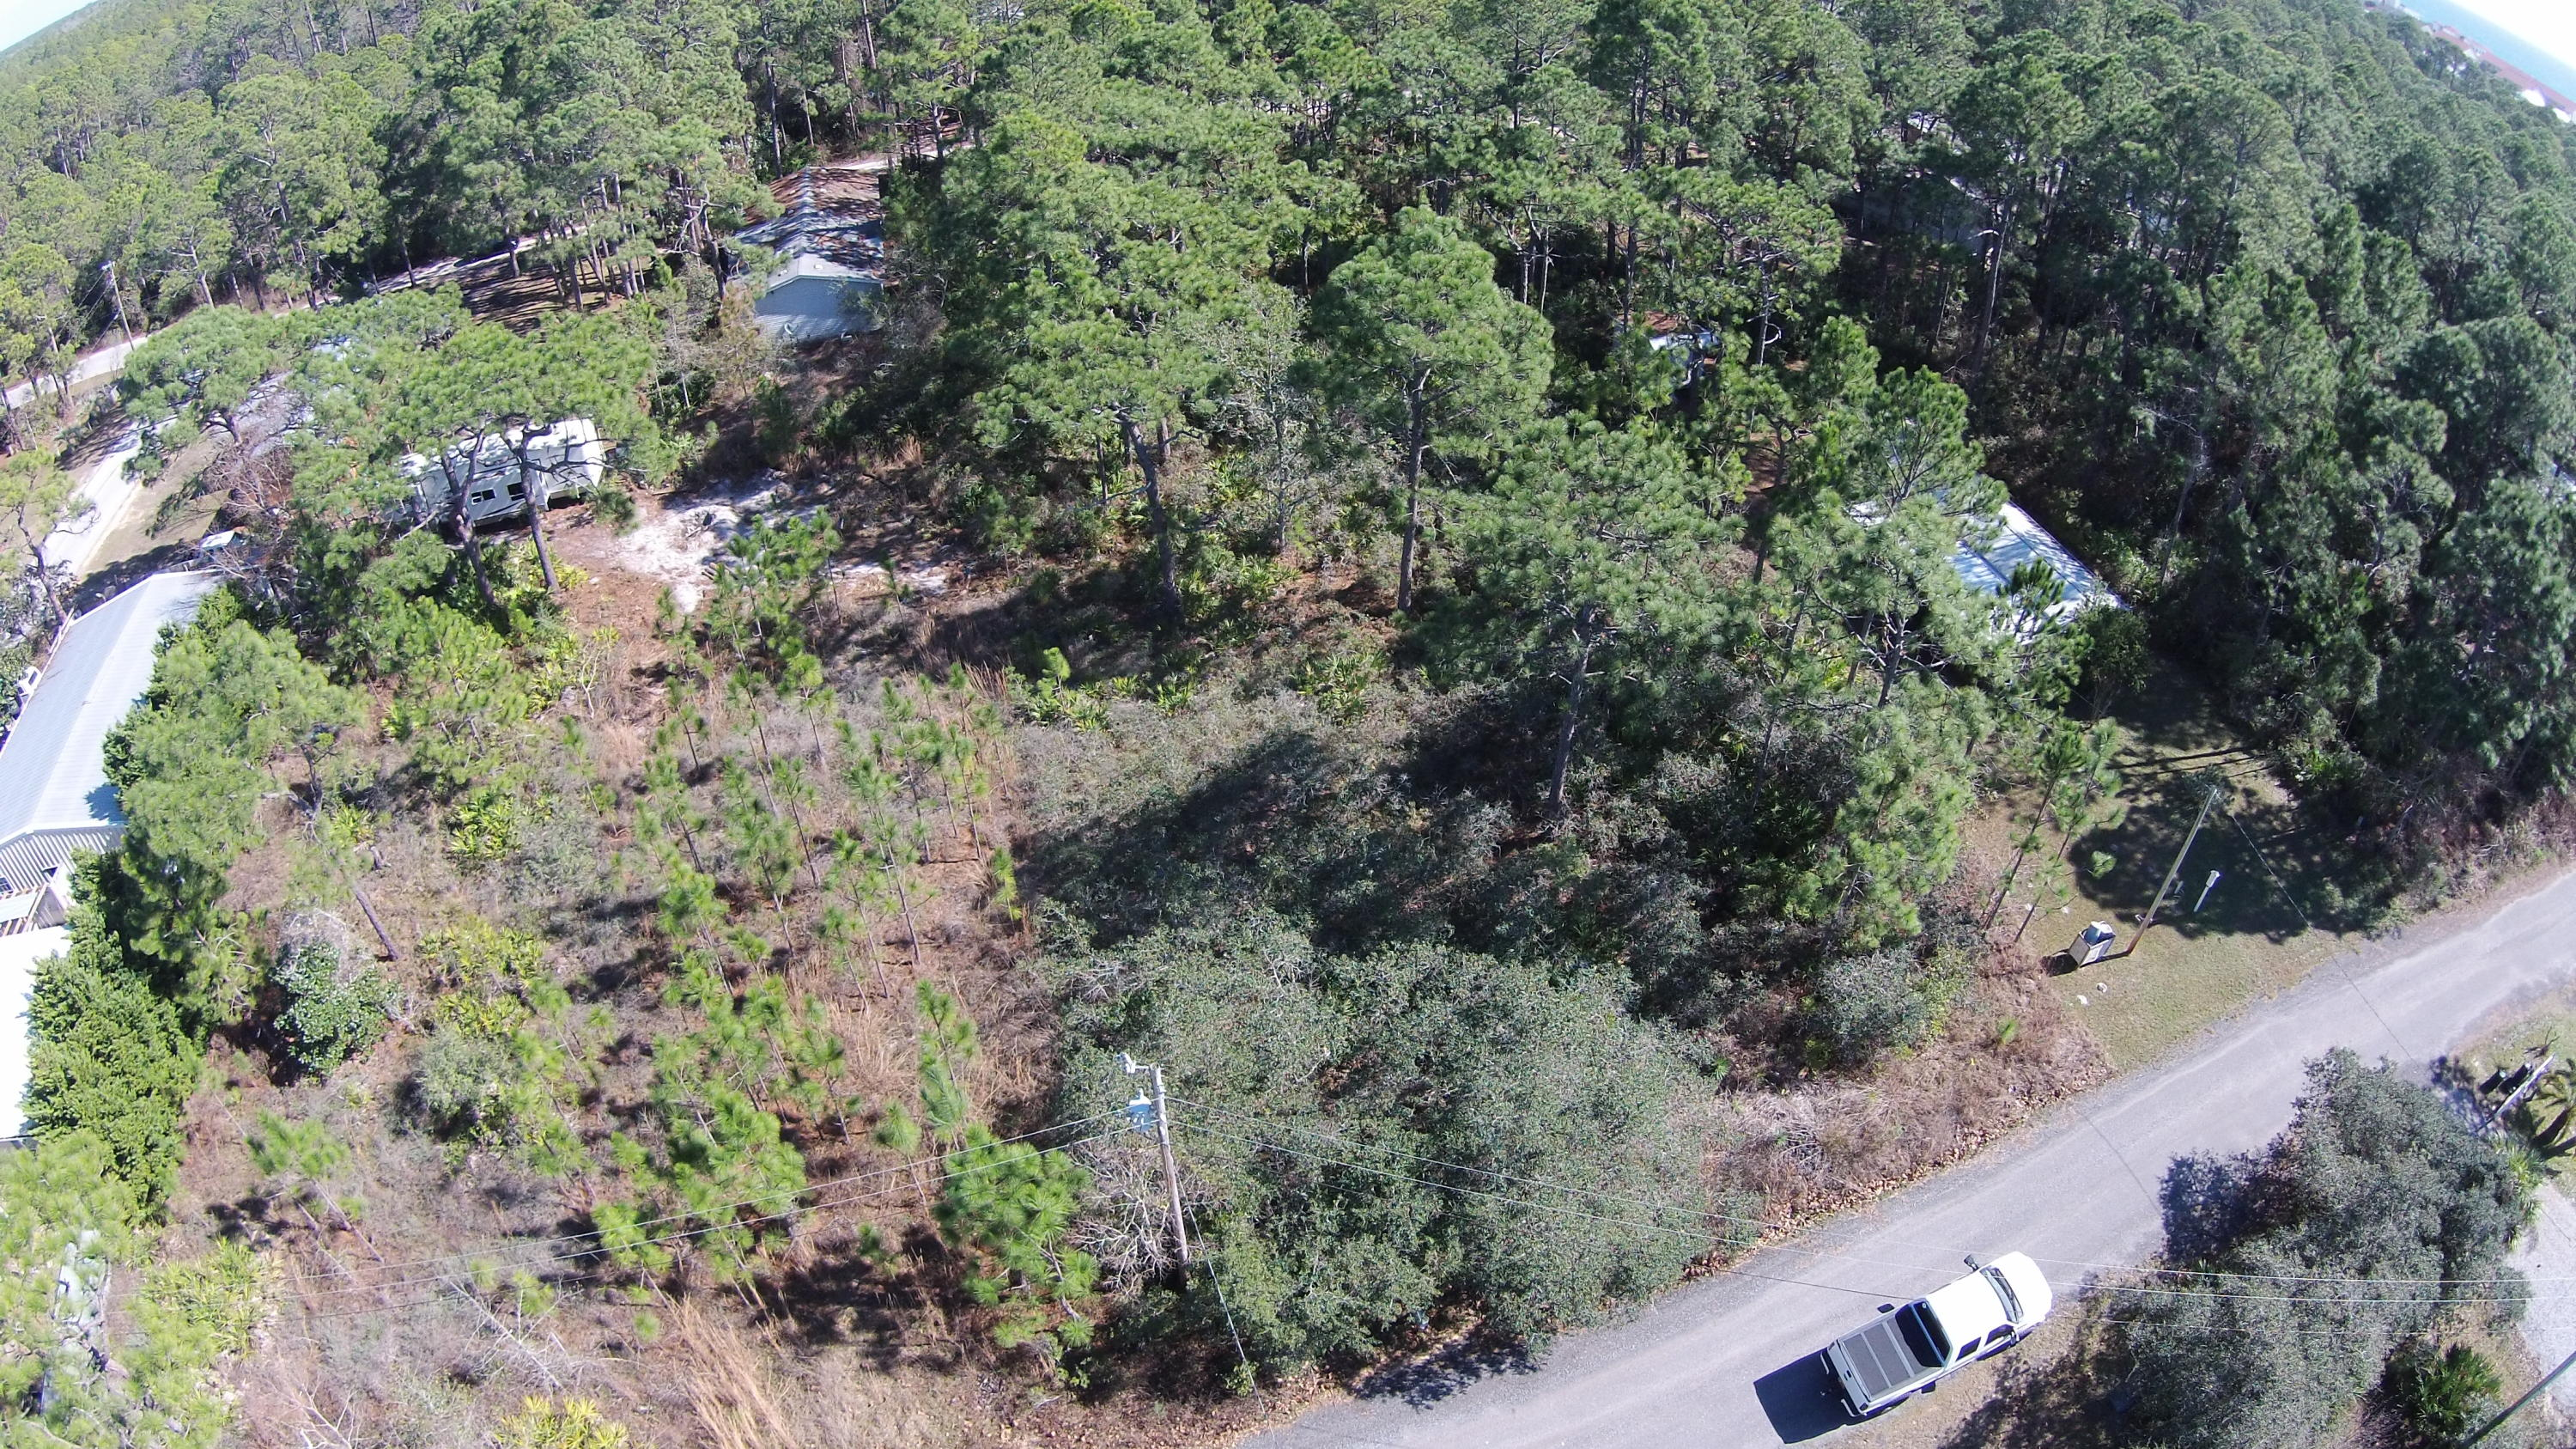 Lot 20 Shady Pines,Santa Rosa Beach,Florida 32459,Vacant land,Shady Pines,20131126143817002353000000